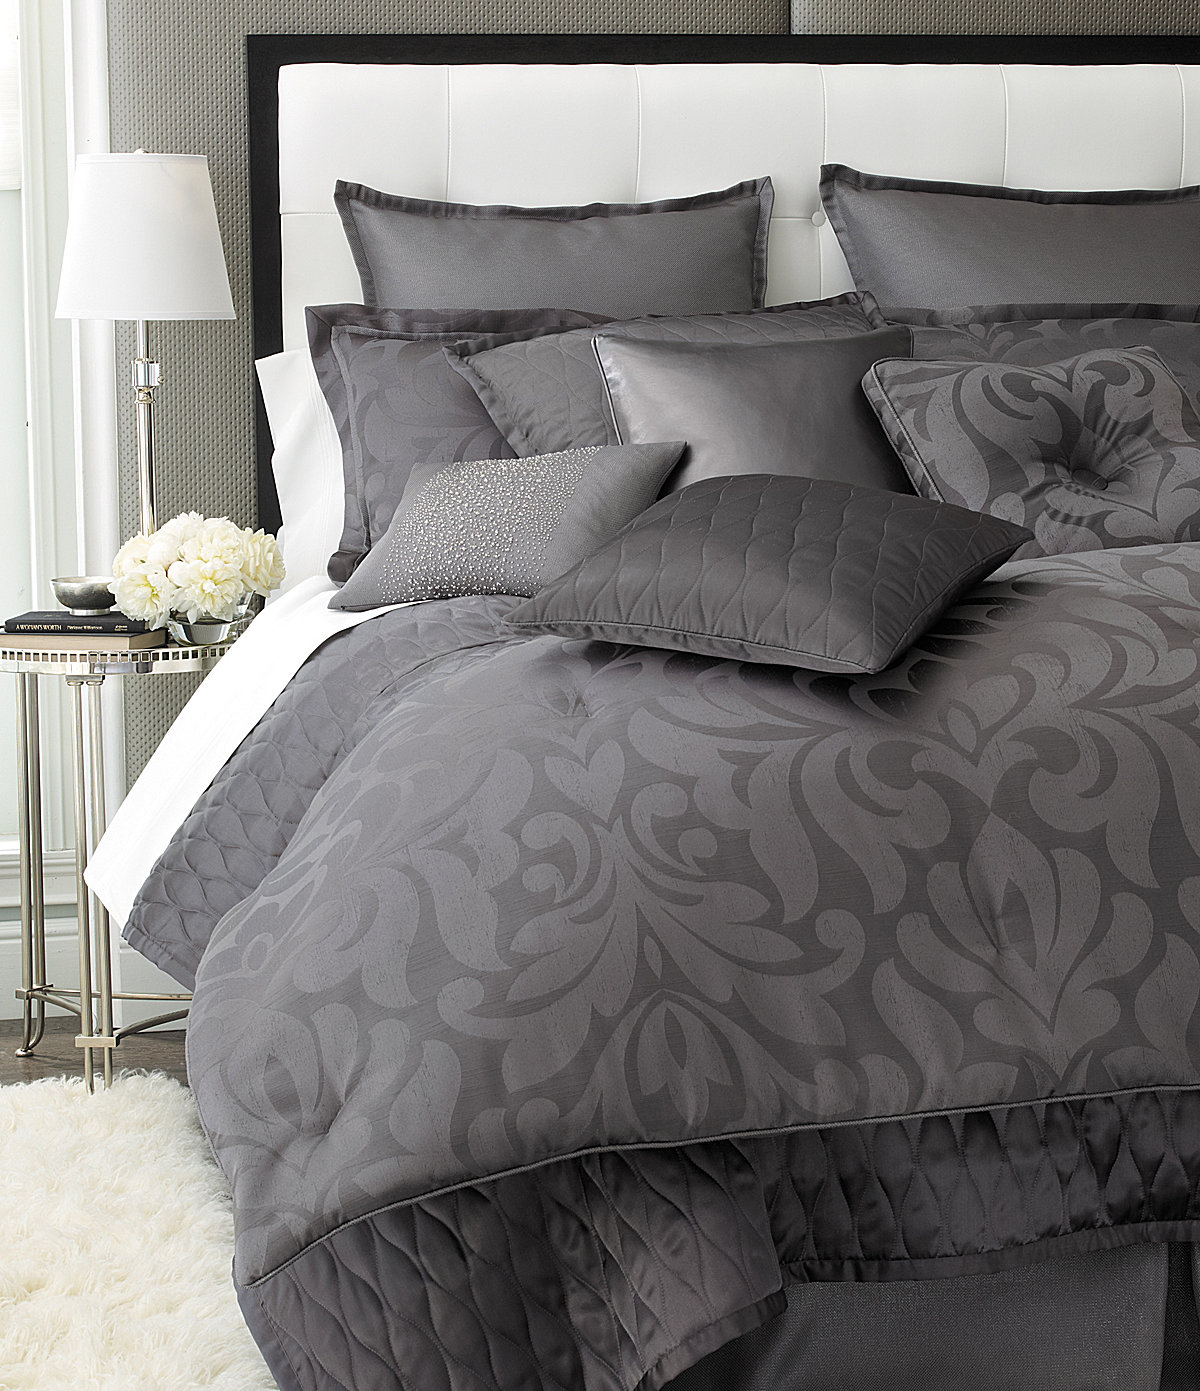 2013 Candice Olson Bedding Collection from Dillard's | Modern ...